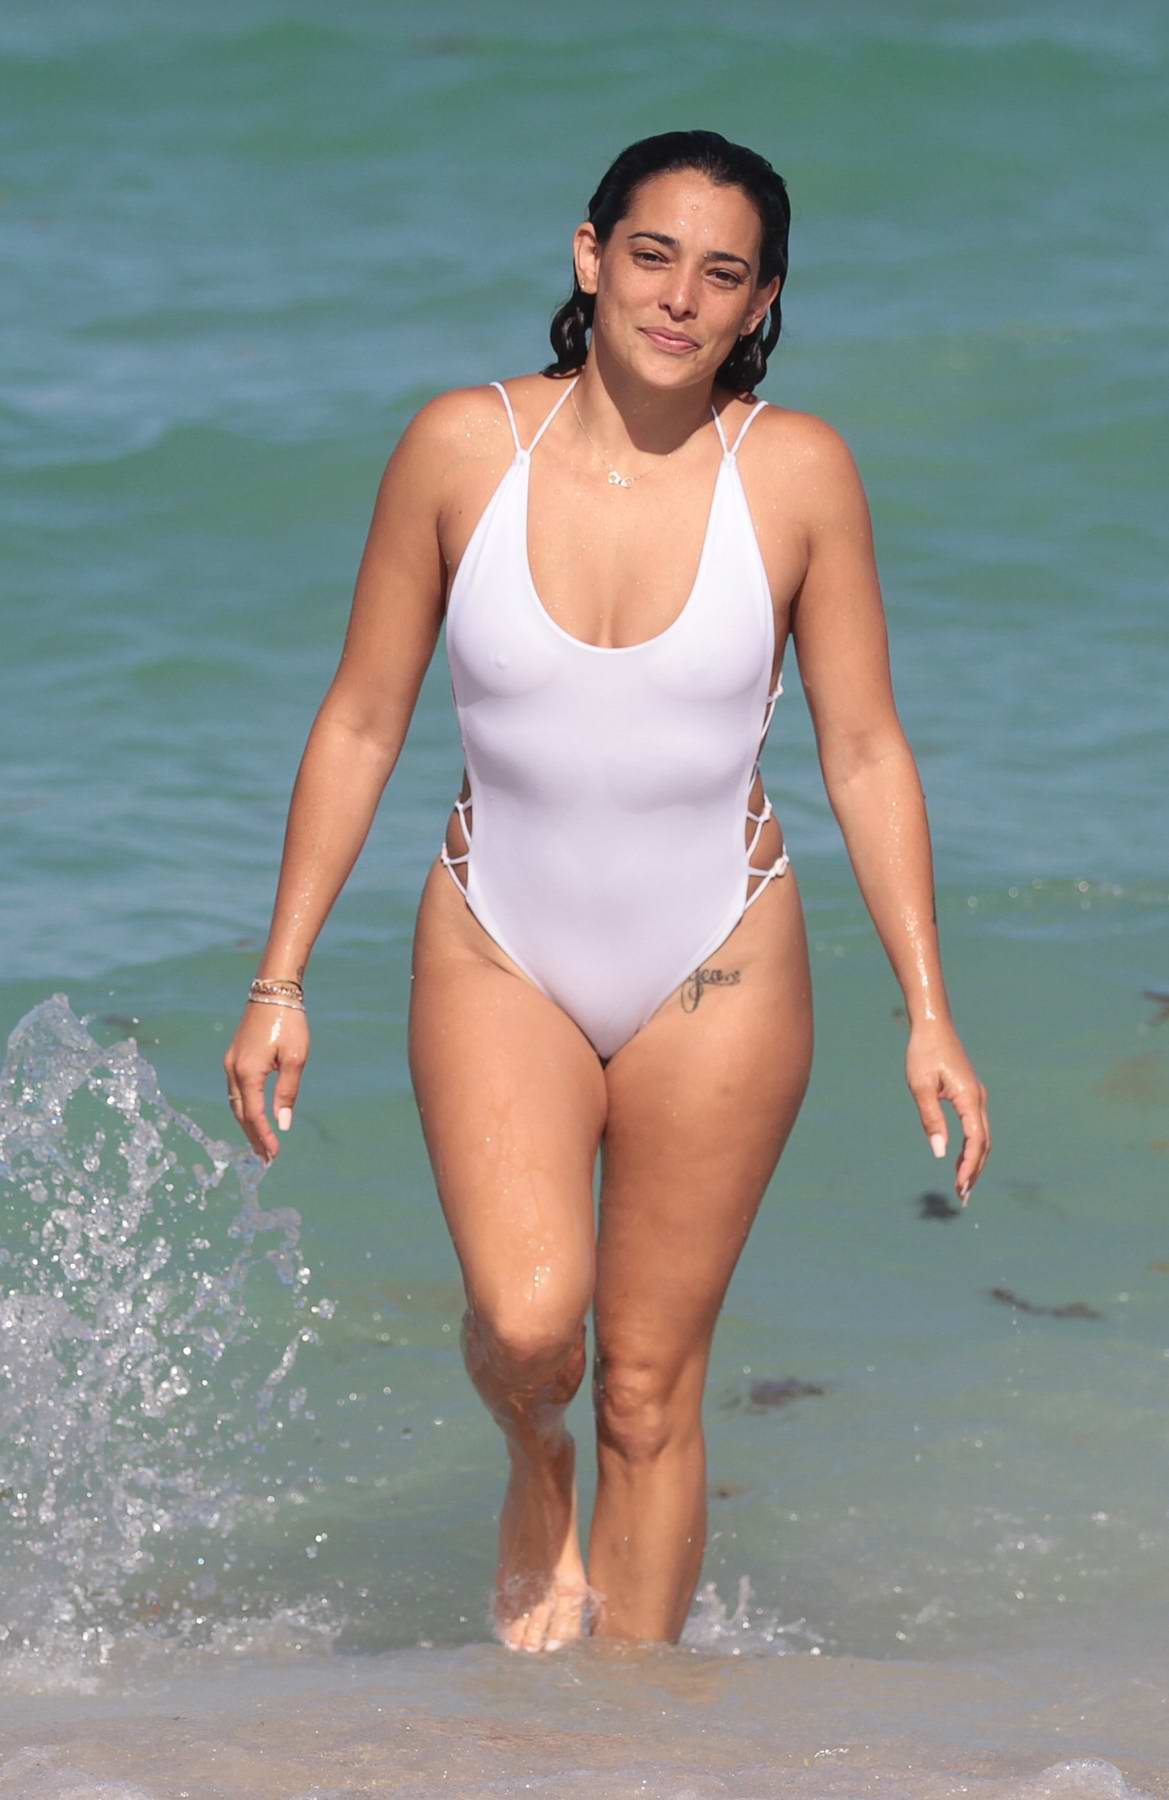 natalie-martinez-in-a-white-swimsuit-with-a-mystery-man-on-the-beach-in-miami-060717_1.jpg